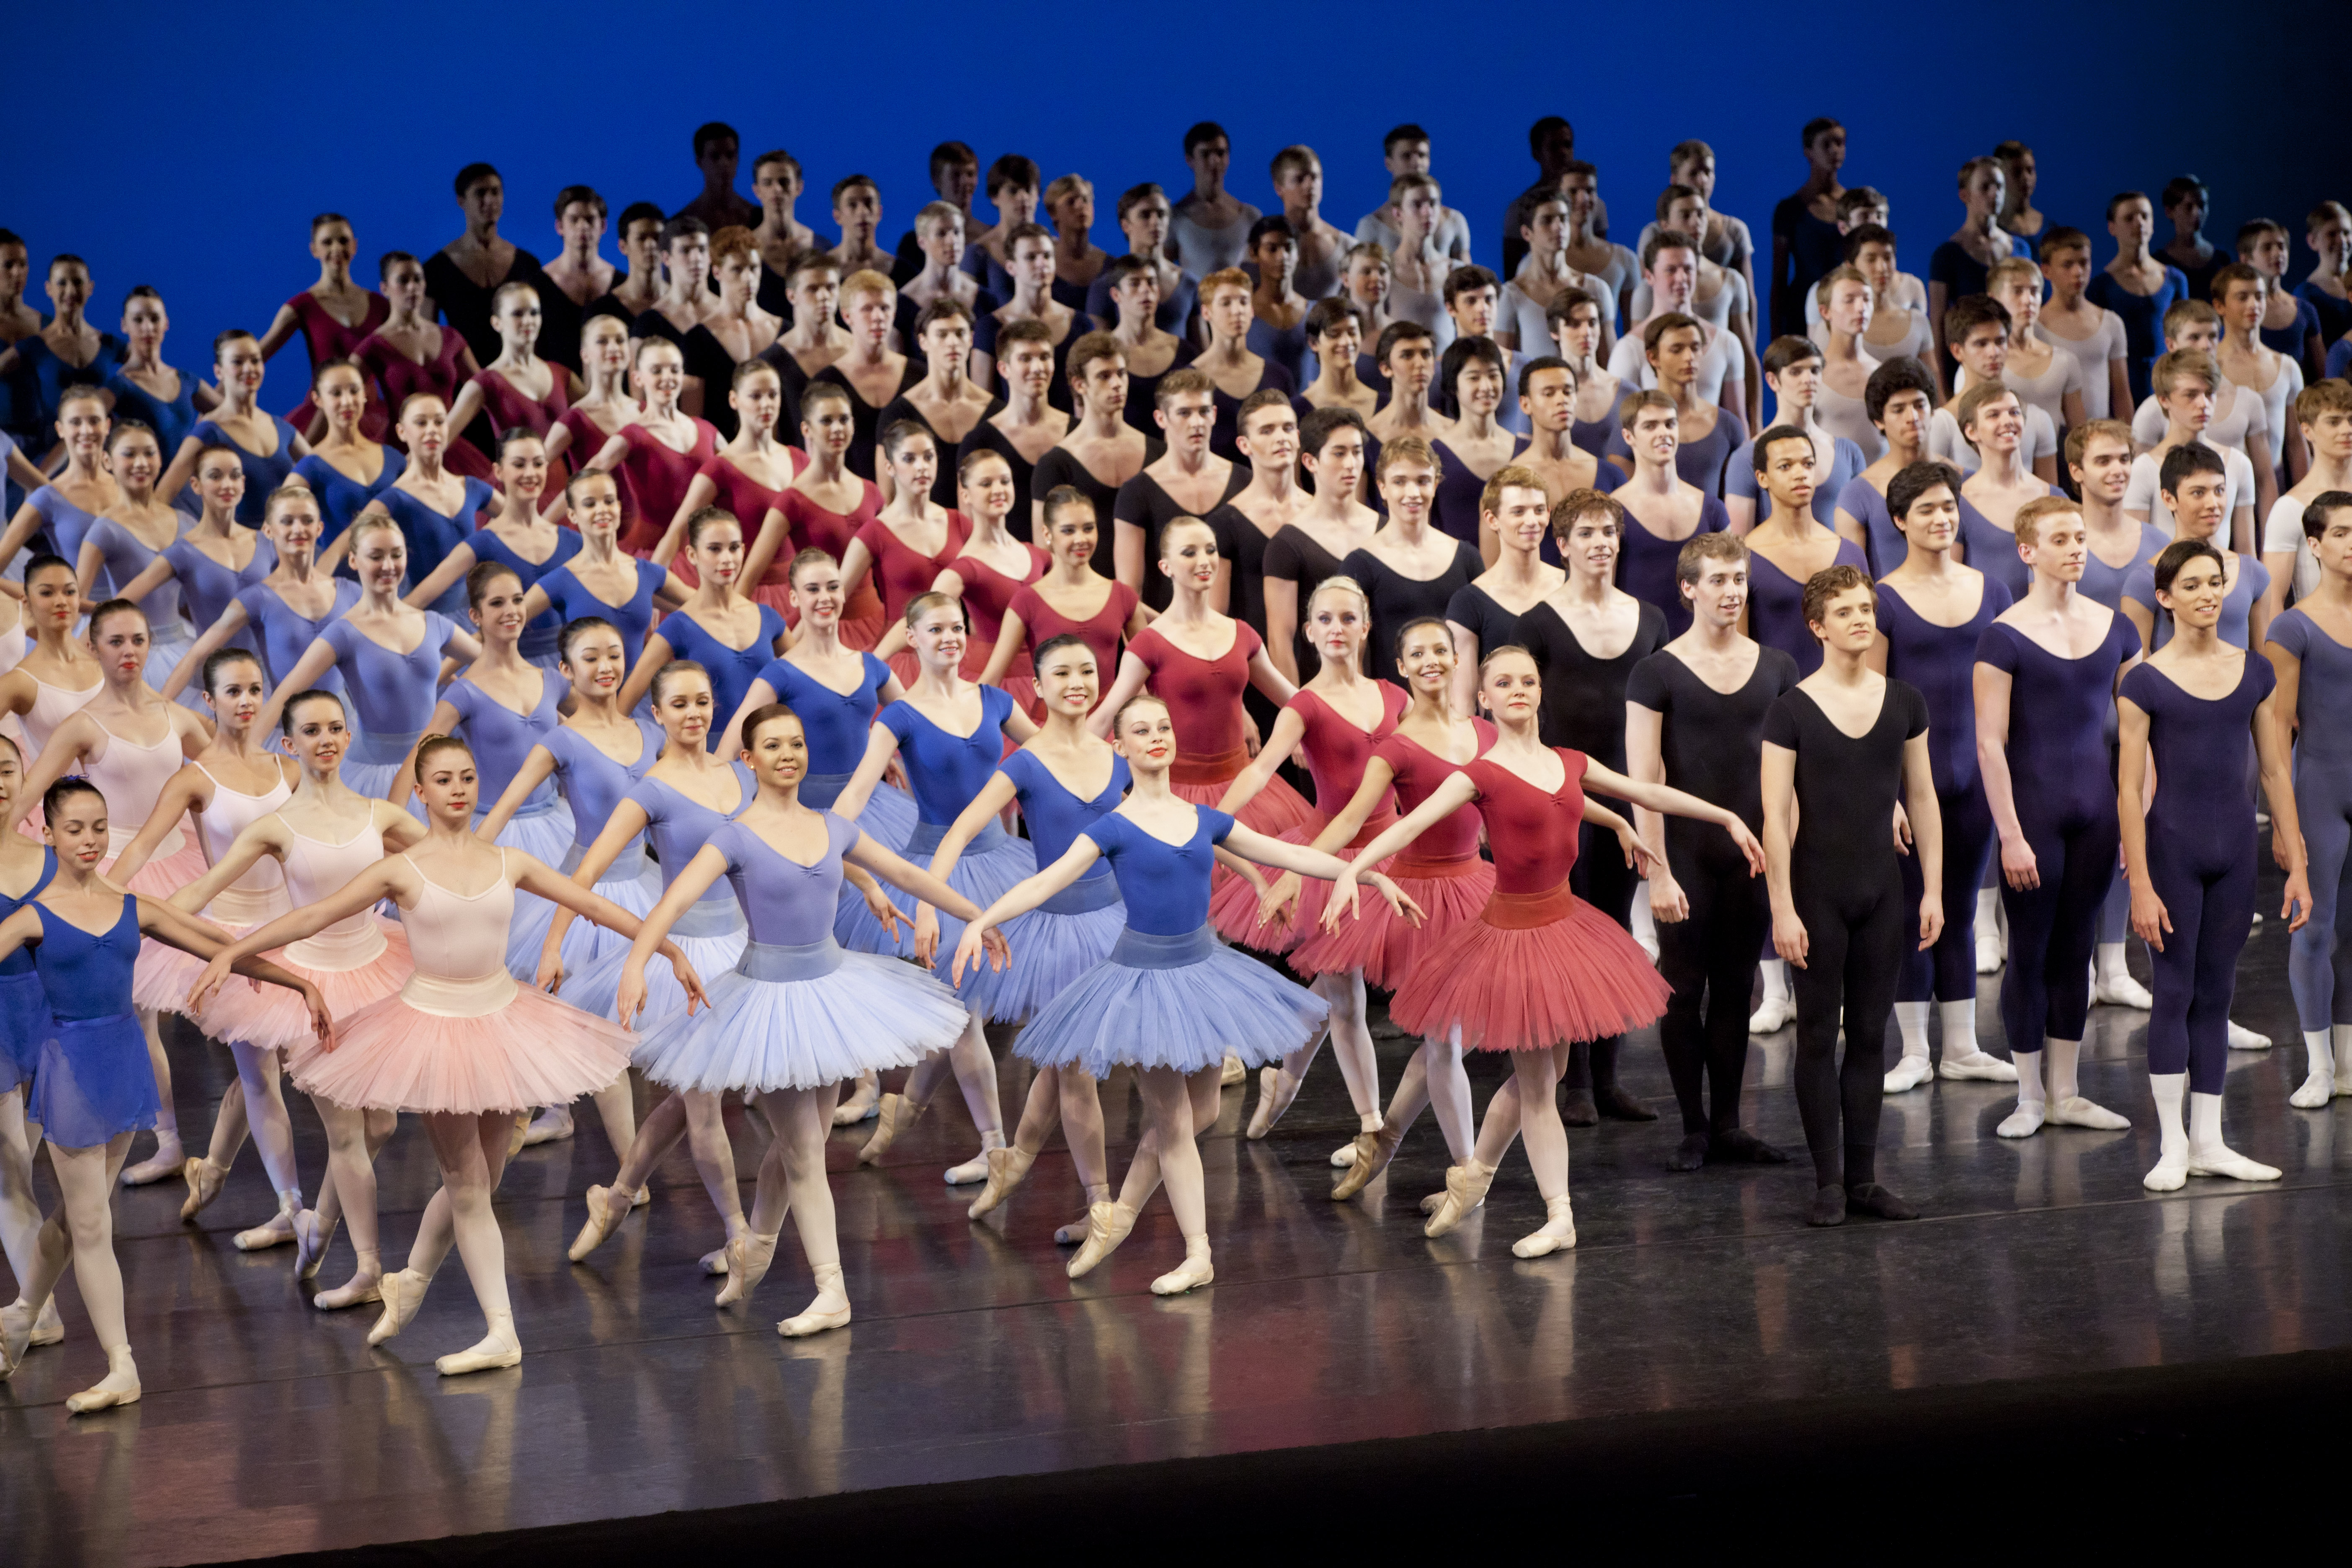 The royal ballet school gives it 39 s annual performance 2011 for Performance house